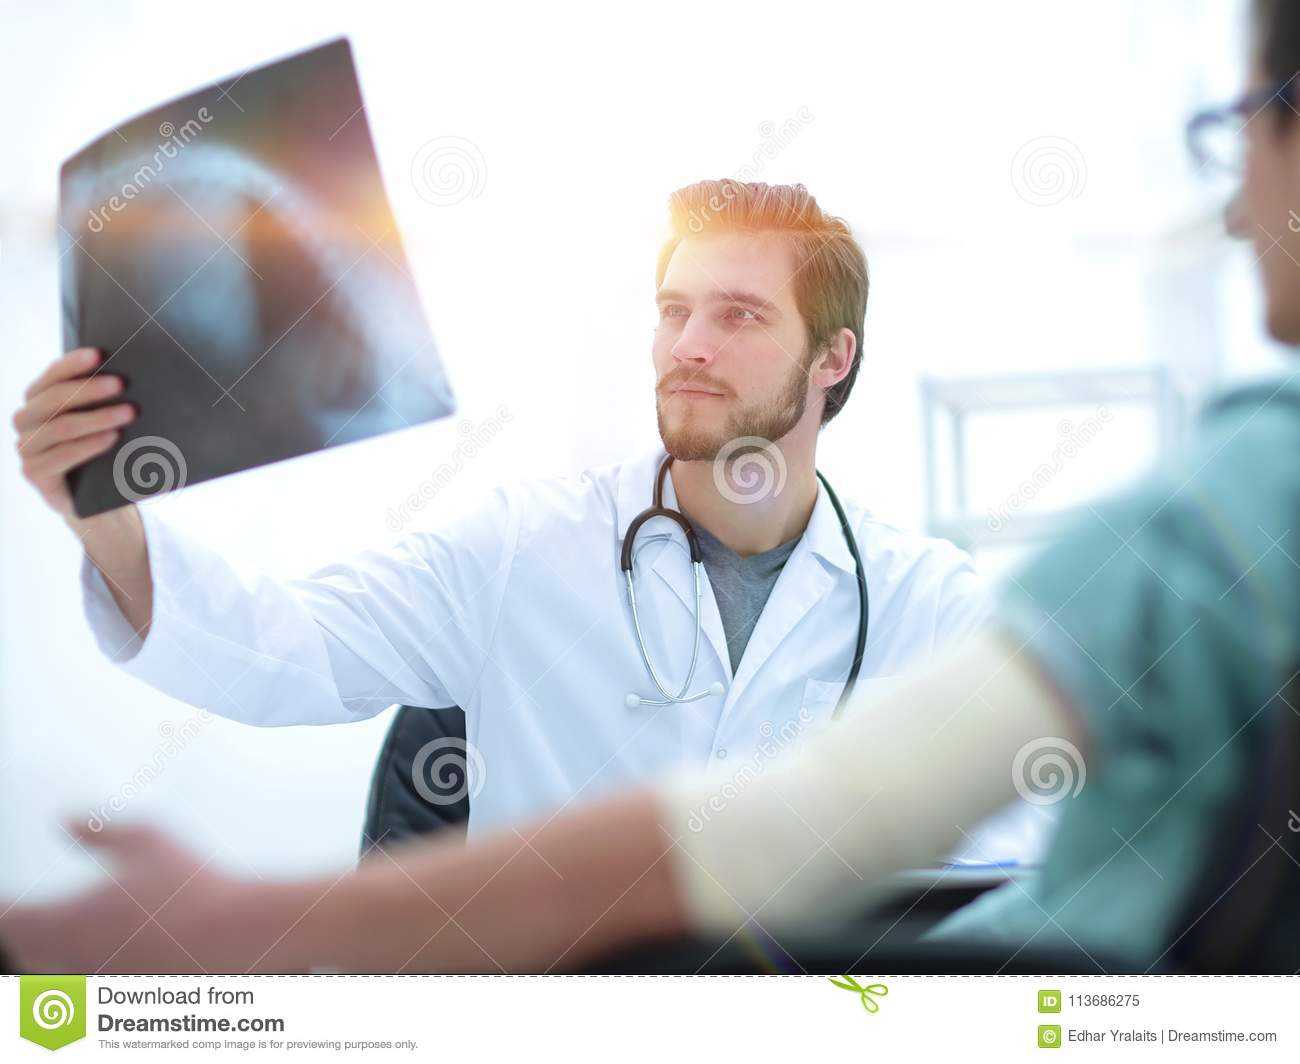 What does the orthopedist cure